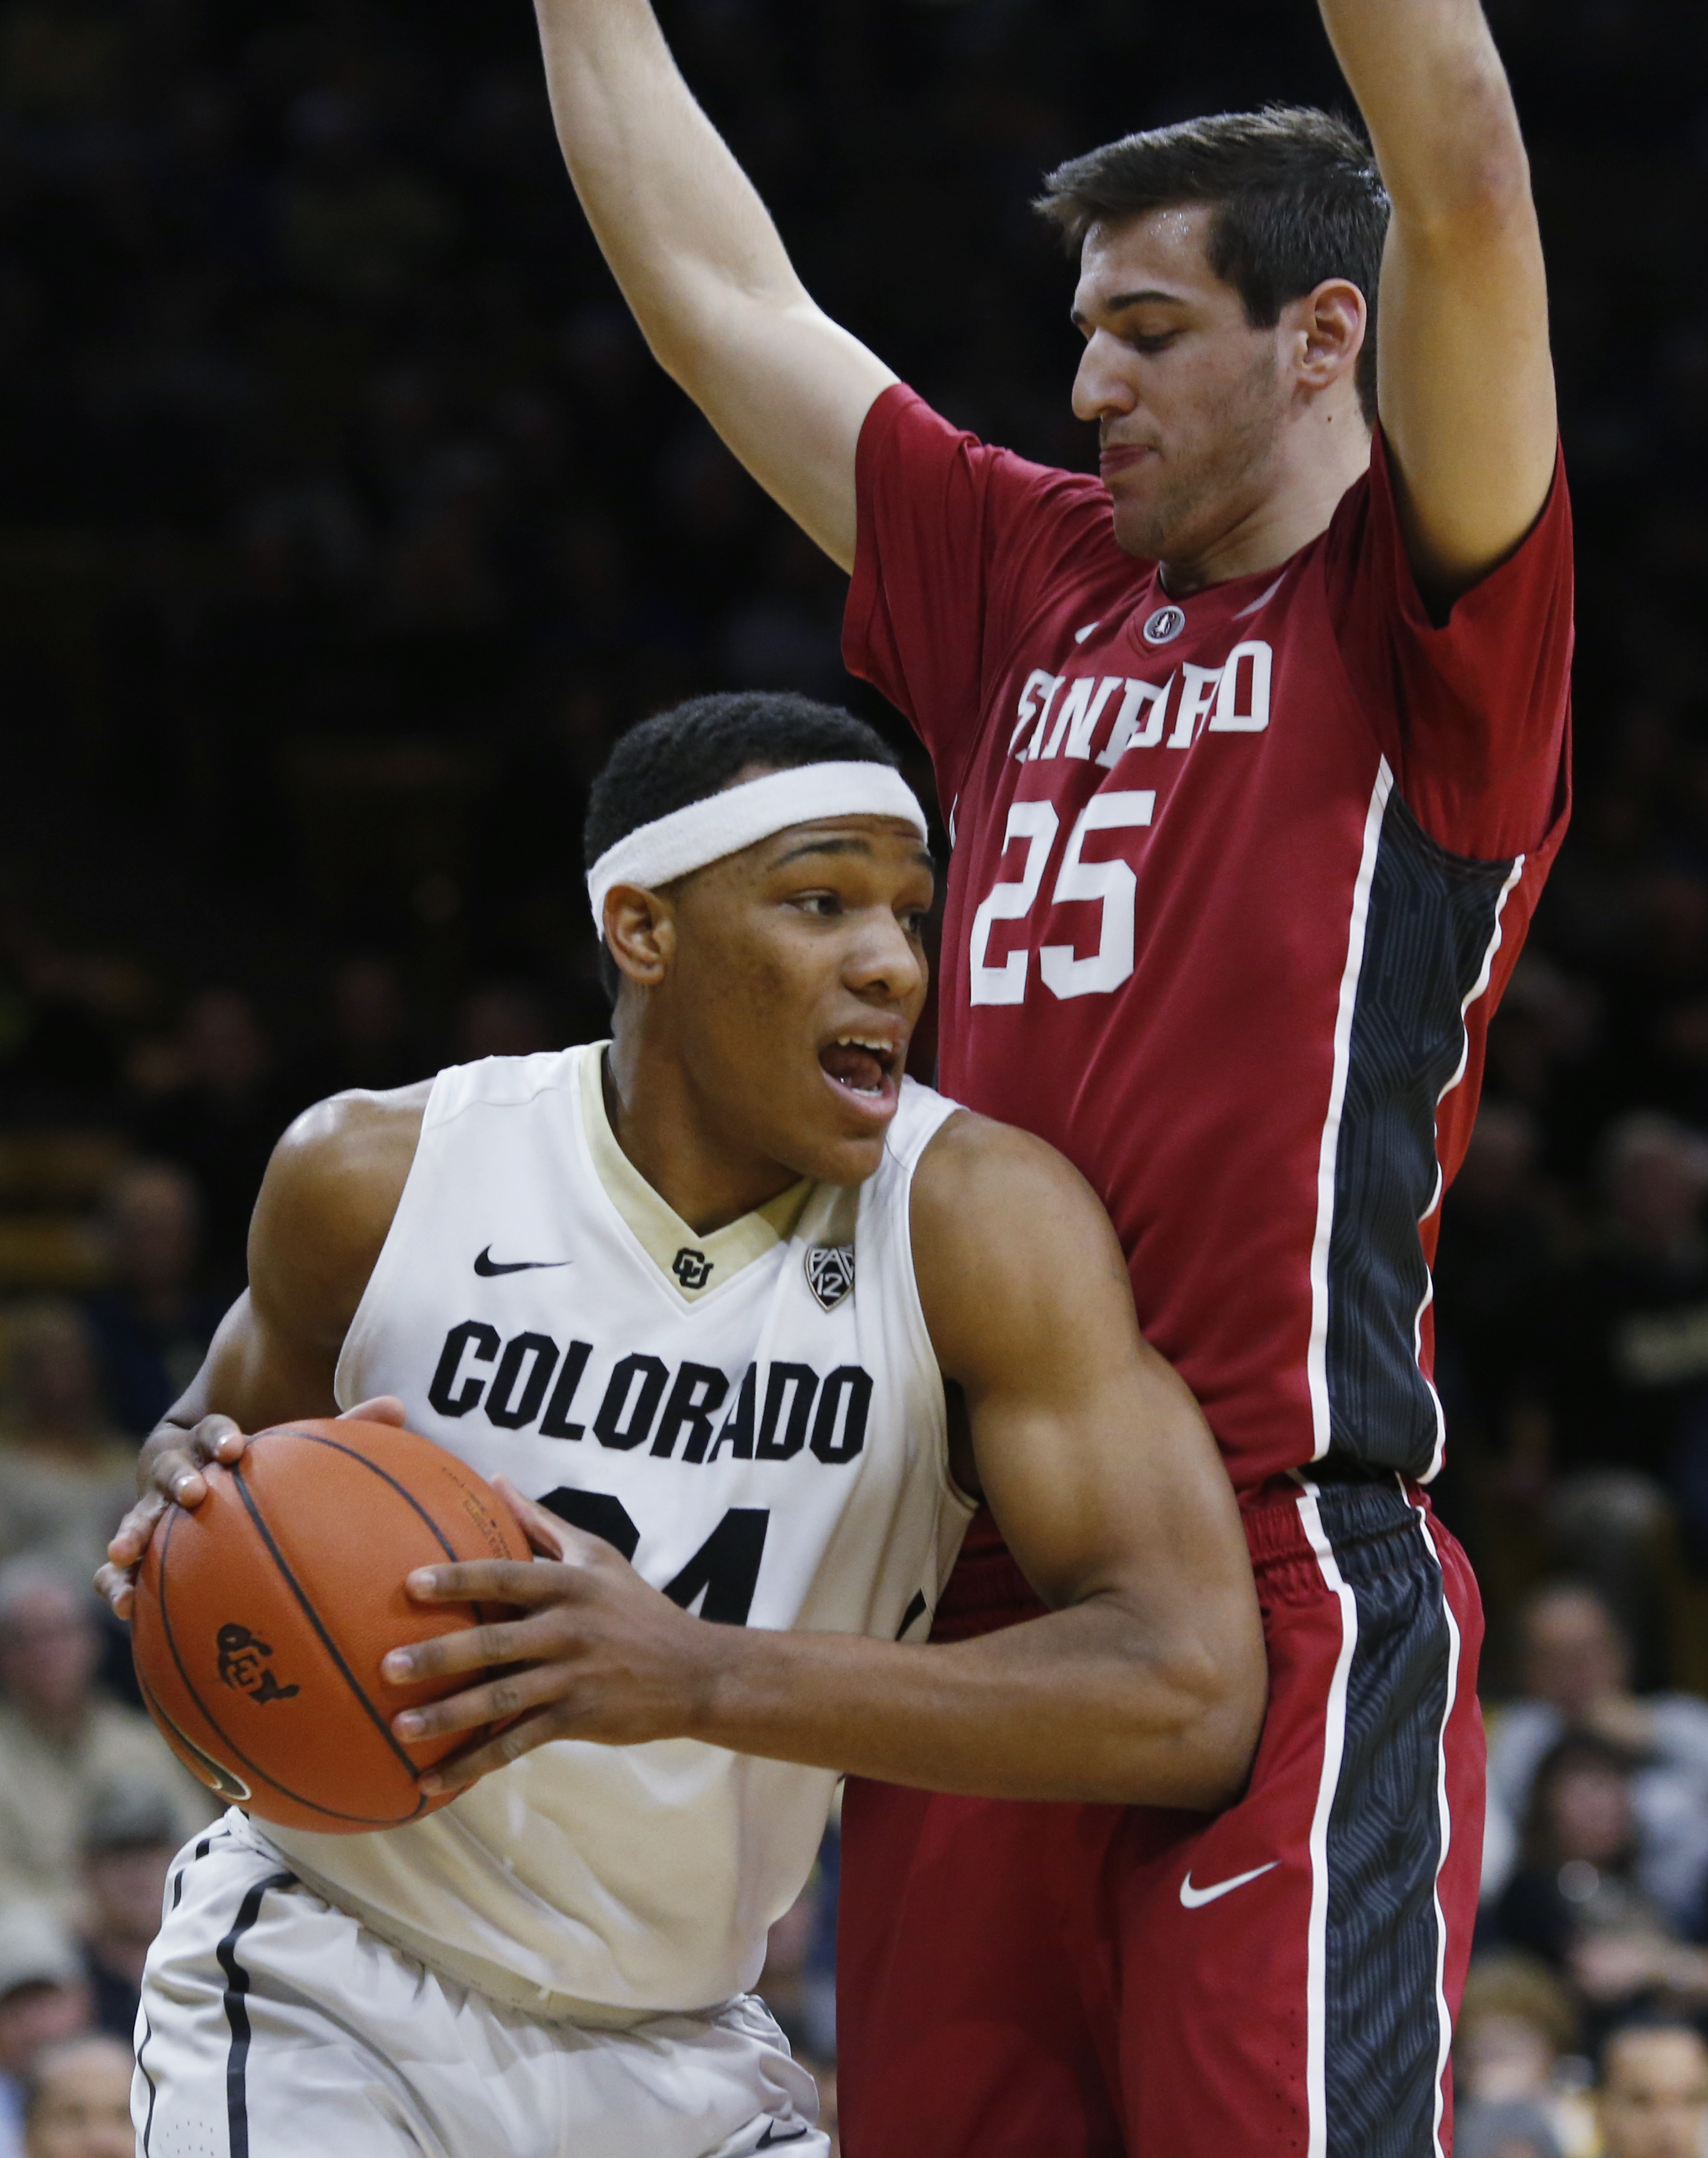 Colorado guard George King, left, looks to pass the ball after pulling in a rebound in front of Stanford forward Rosco Allen during the first half of an NCAA college basketball game Wednesday, Jan. 27, 2016, in Boulder, Colo. (AP Photo/David Zalubowski)